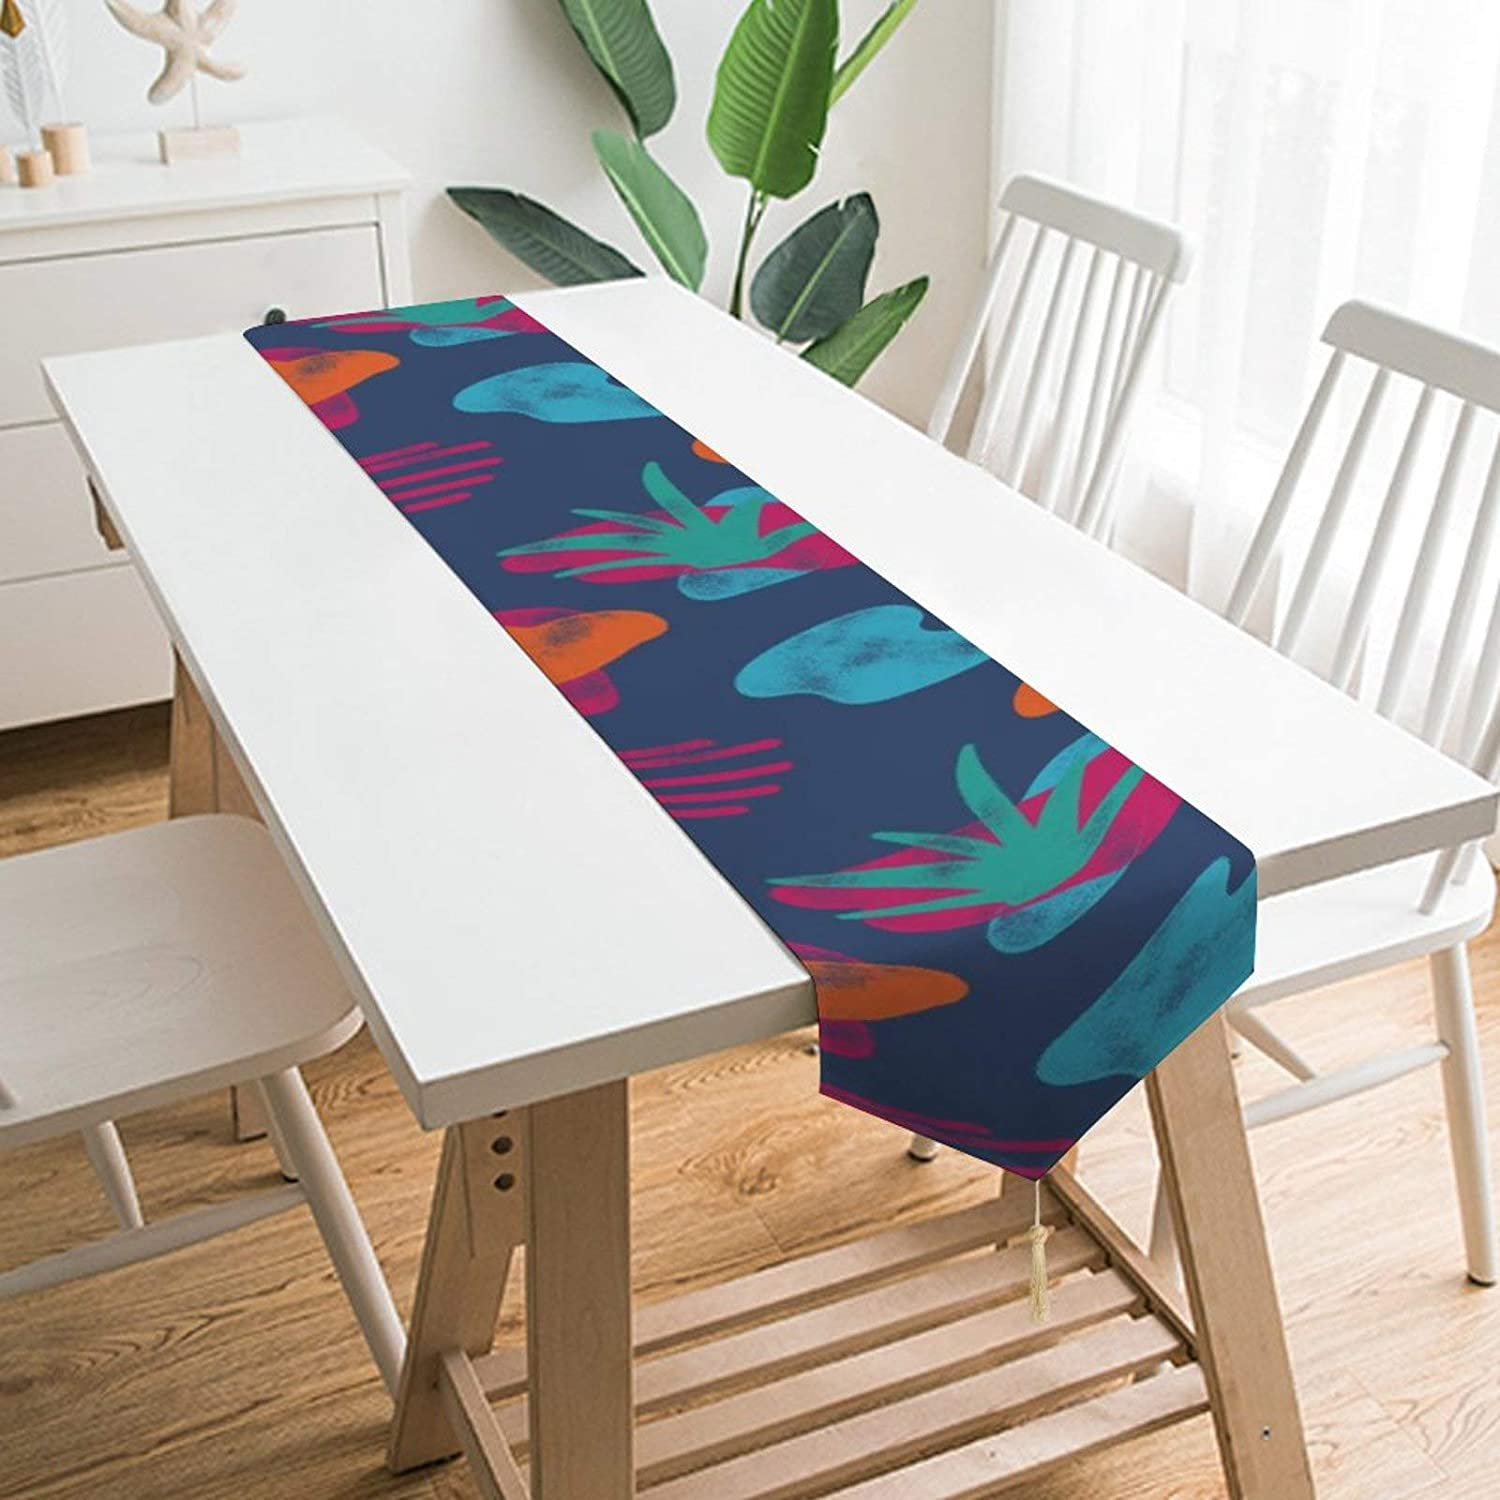 QSMX Abstract Coconut Tree Table Runners,Easy to Clean Non-Slip Heat Resistant Modern Farmhouse Table Runner for Family Dinner Halloween Thanksgiving Christmas Party